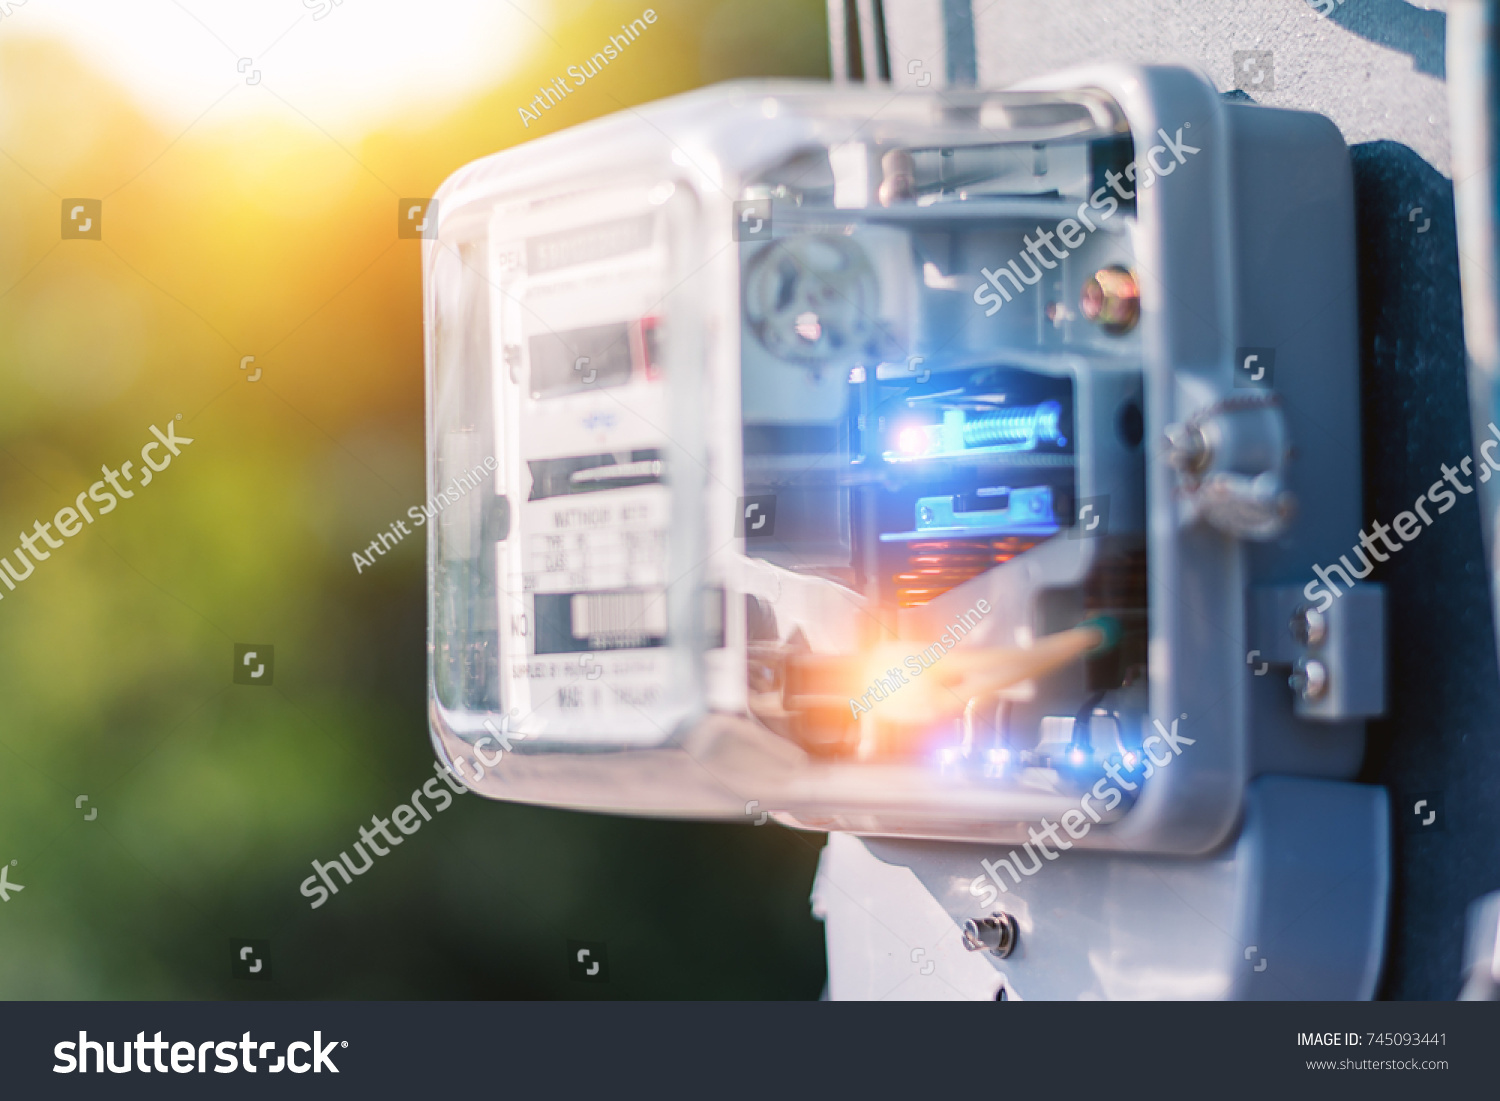 Watthour Meter Electricity Use Home Appliance This Stock Photo Edit In The Of For Appliancethis Is A Modern Technology That